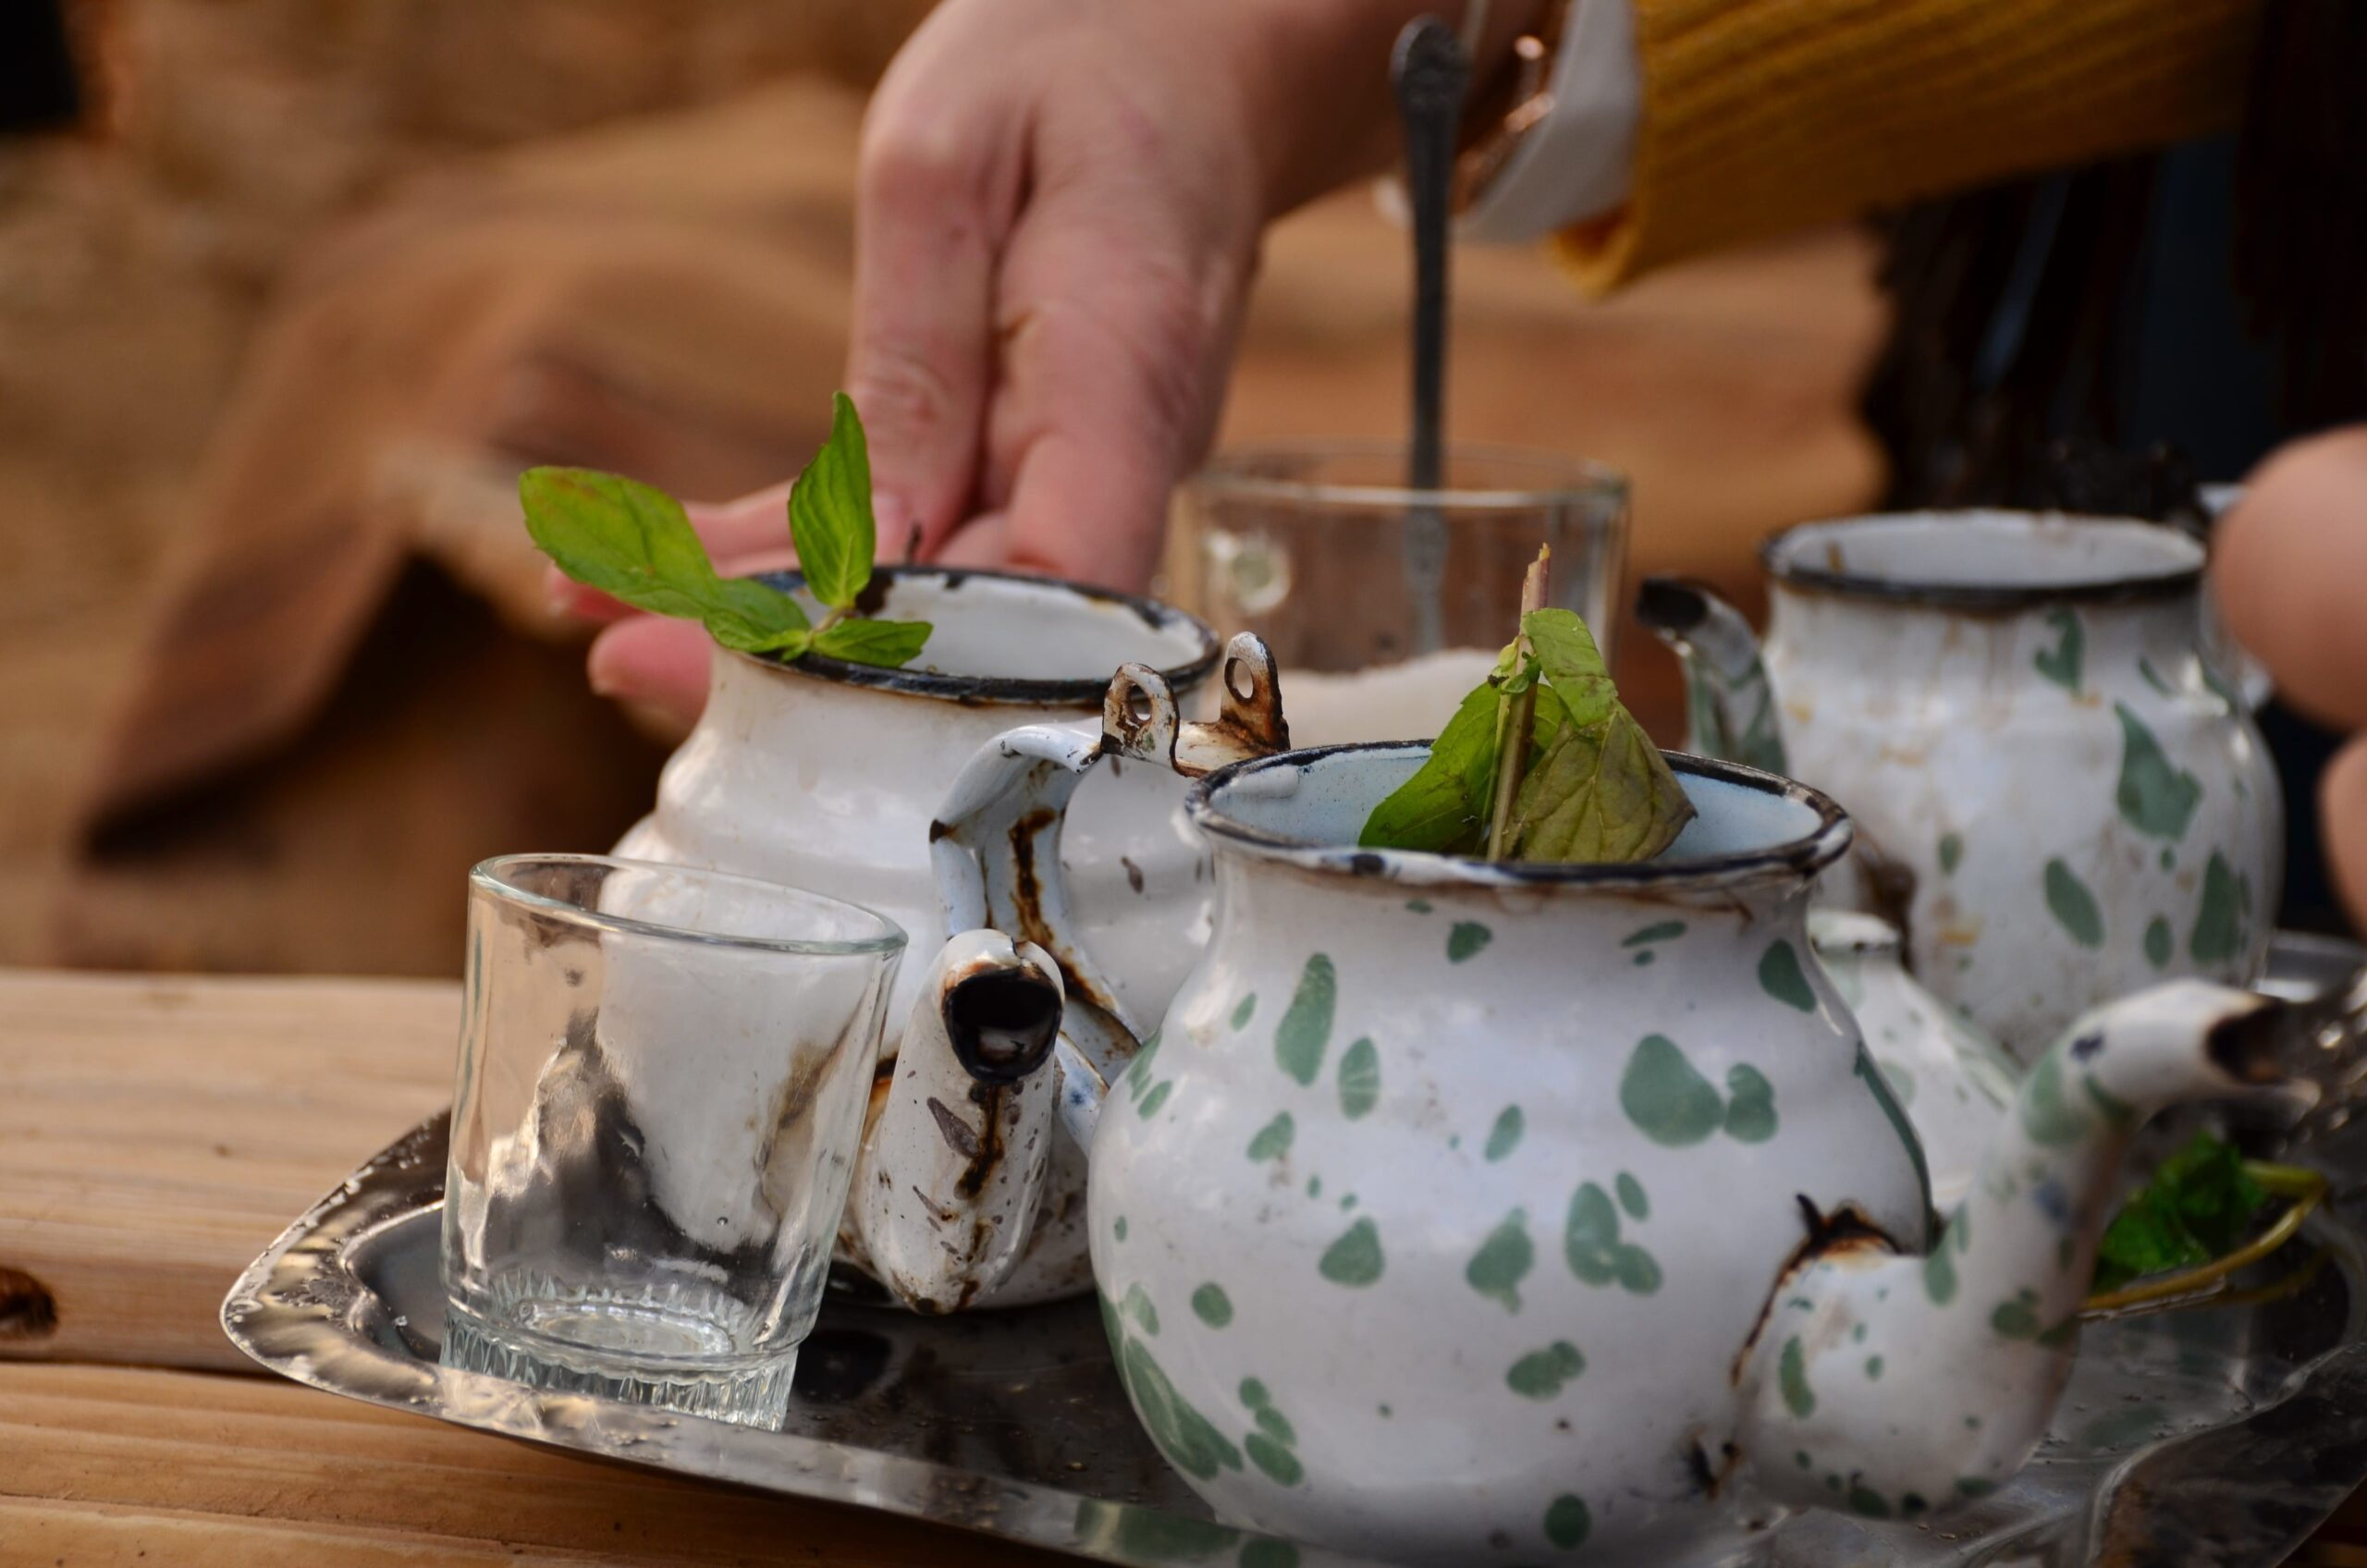 Tea being served with mint leaves in the pot